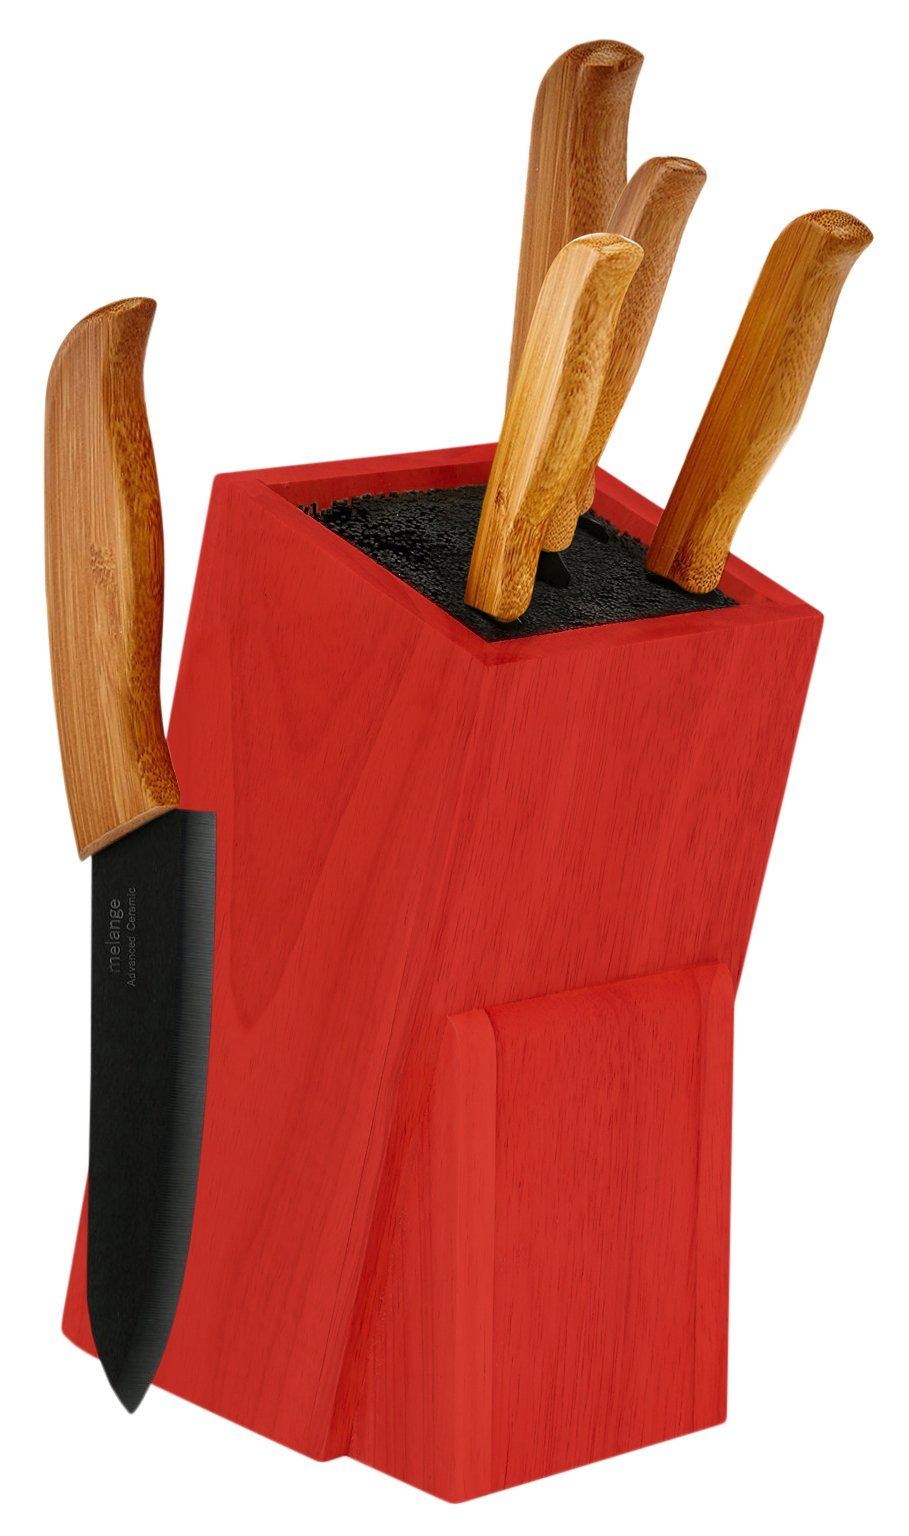 Melange 6-Piece Bamboo Handle and Black Blade Ceramic Knife Set with Red Wood Universal Knife Block